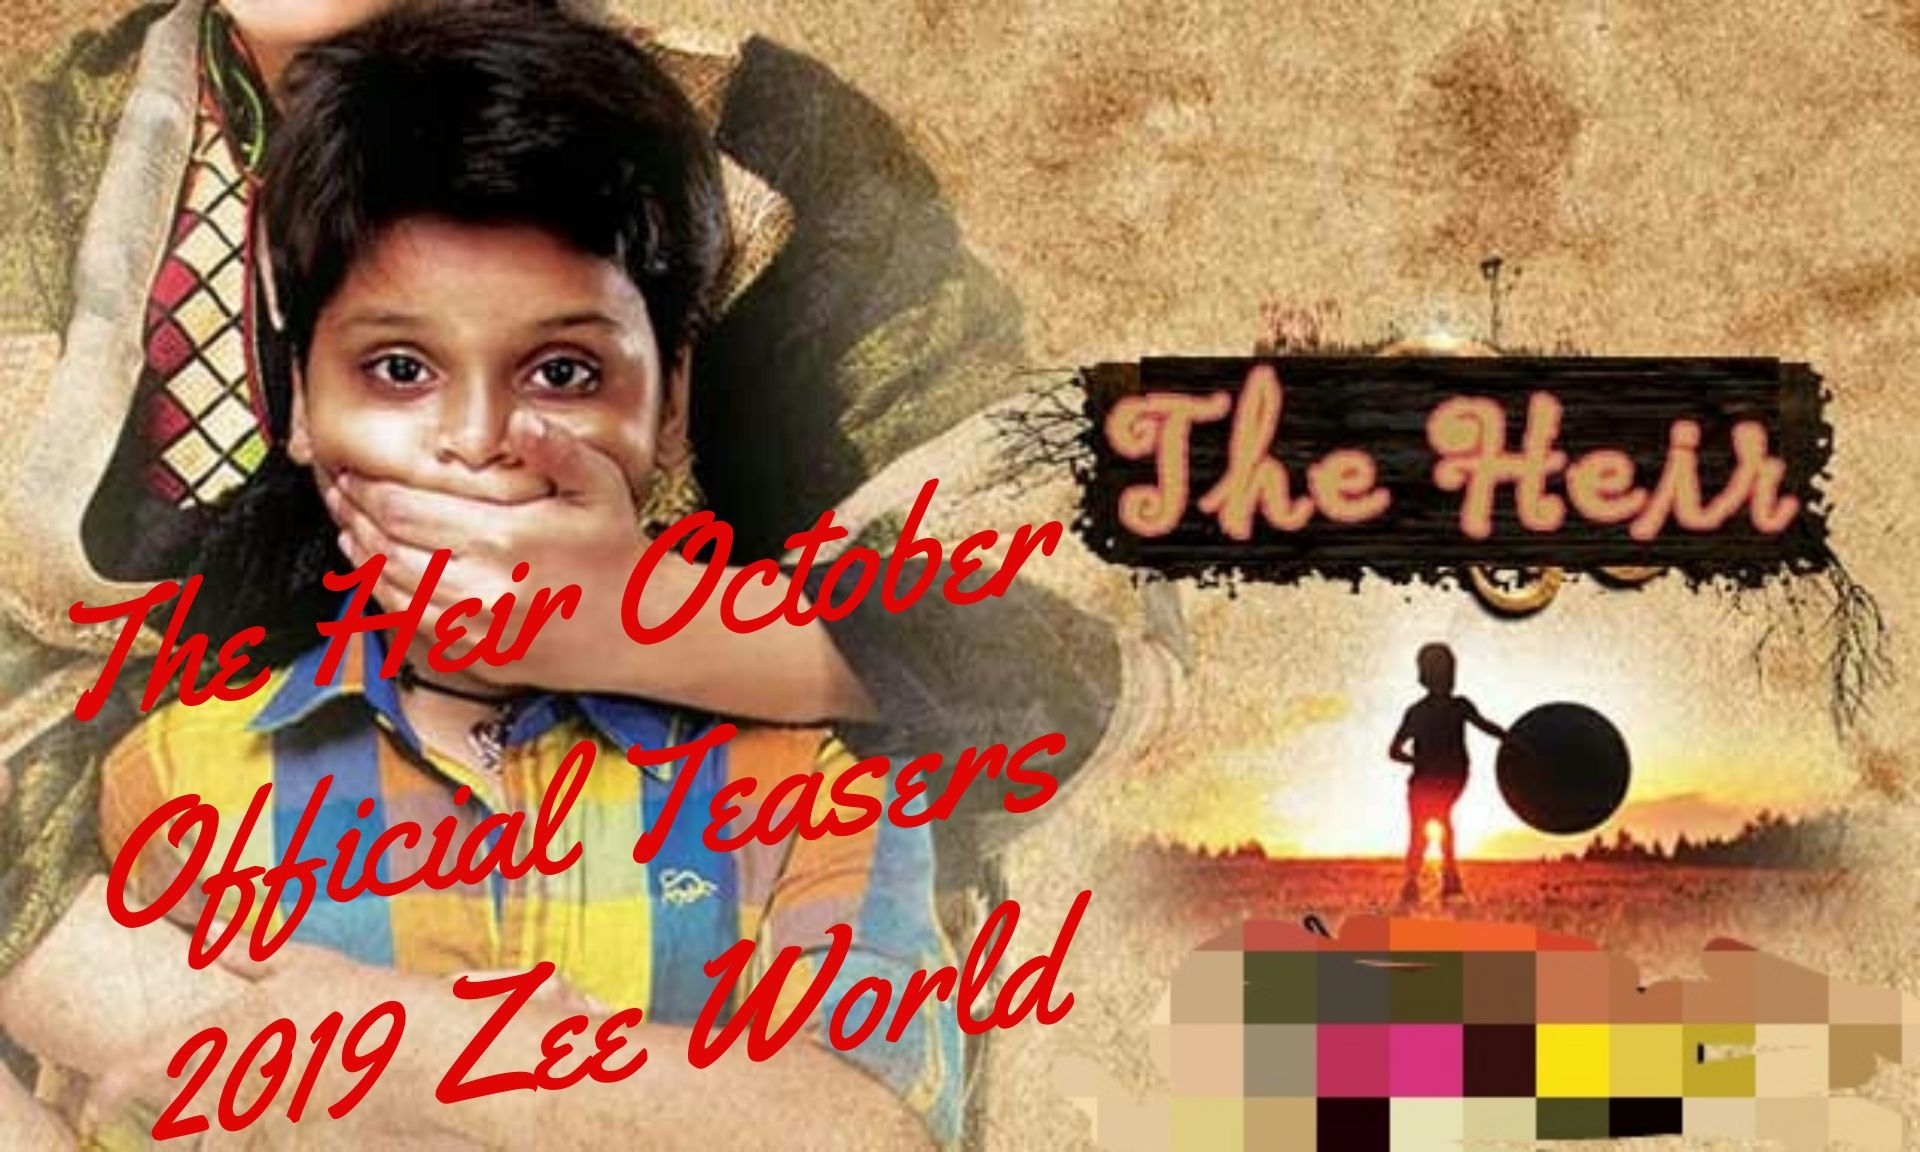 The Heir October Official Teasers 2019 Zee World